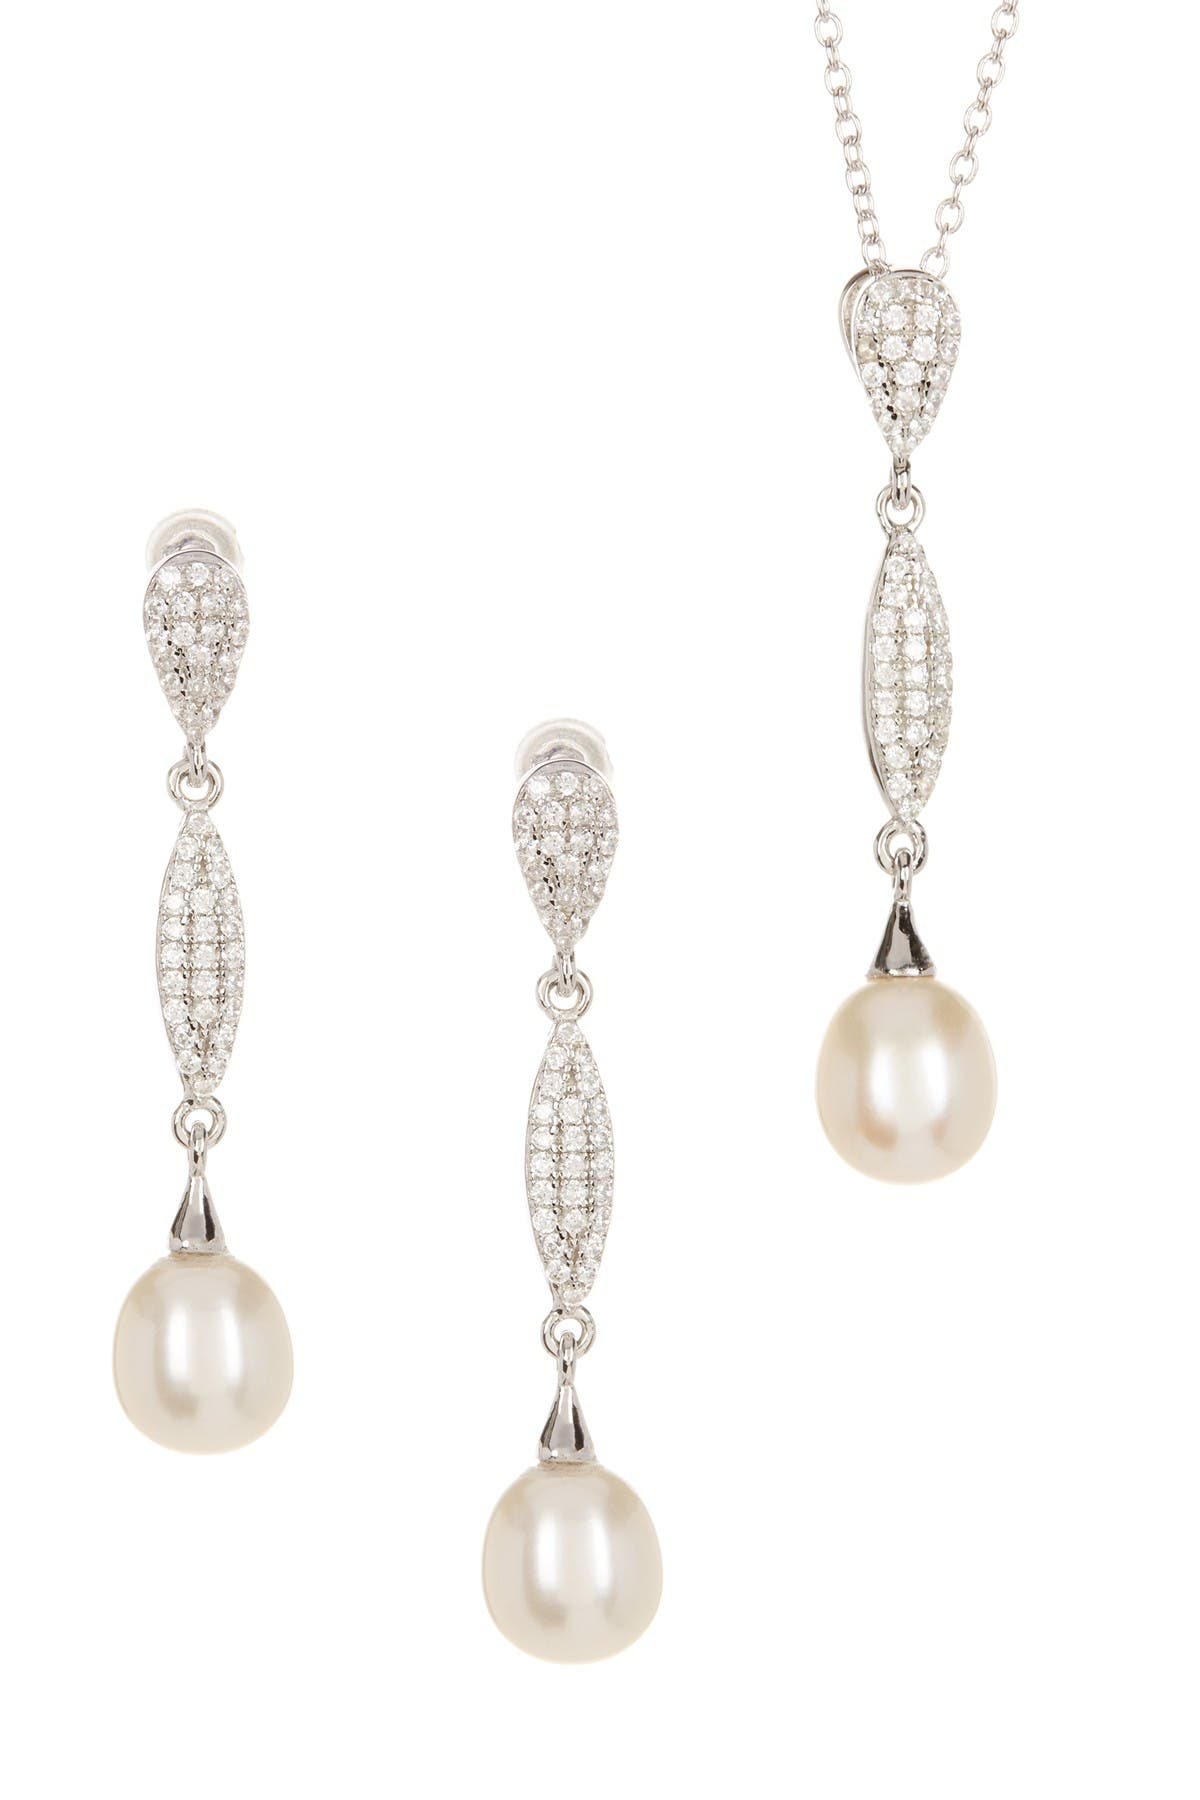 Image of Splendid Pearls 7.5-8mm White Freshwater Pearl & CZ Necklace & Dangle Earrings Set